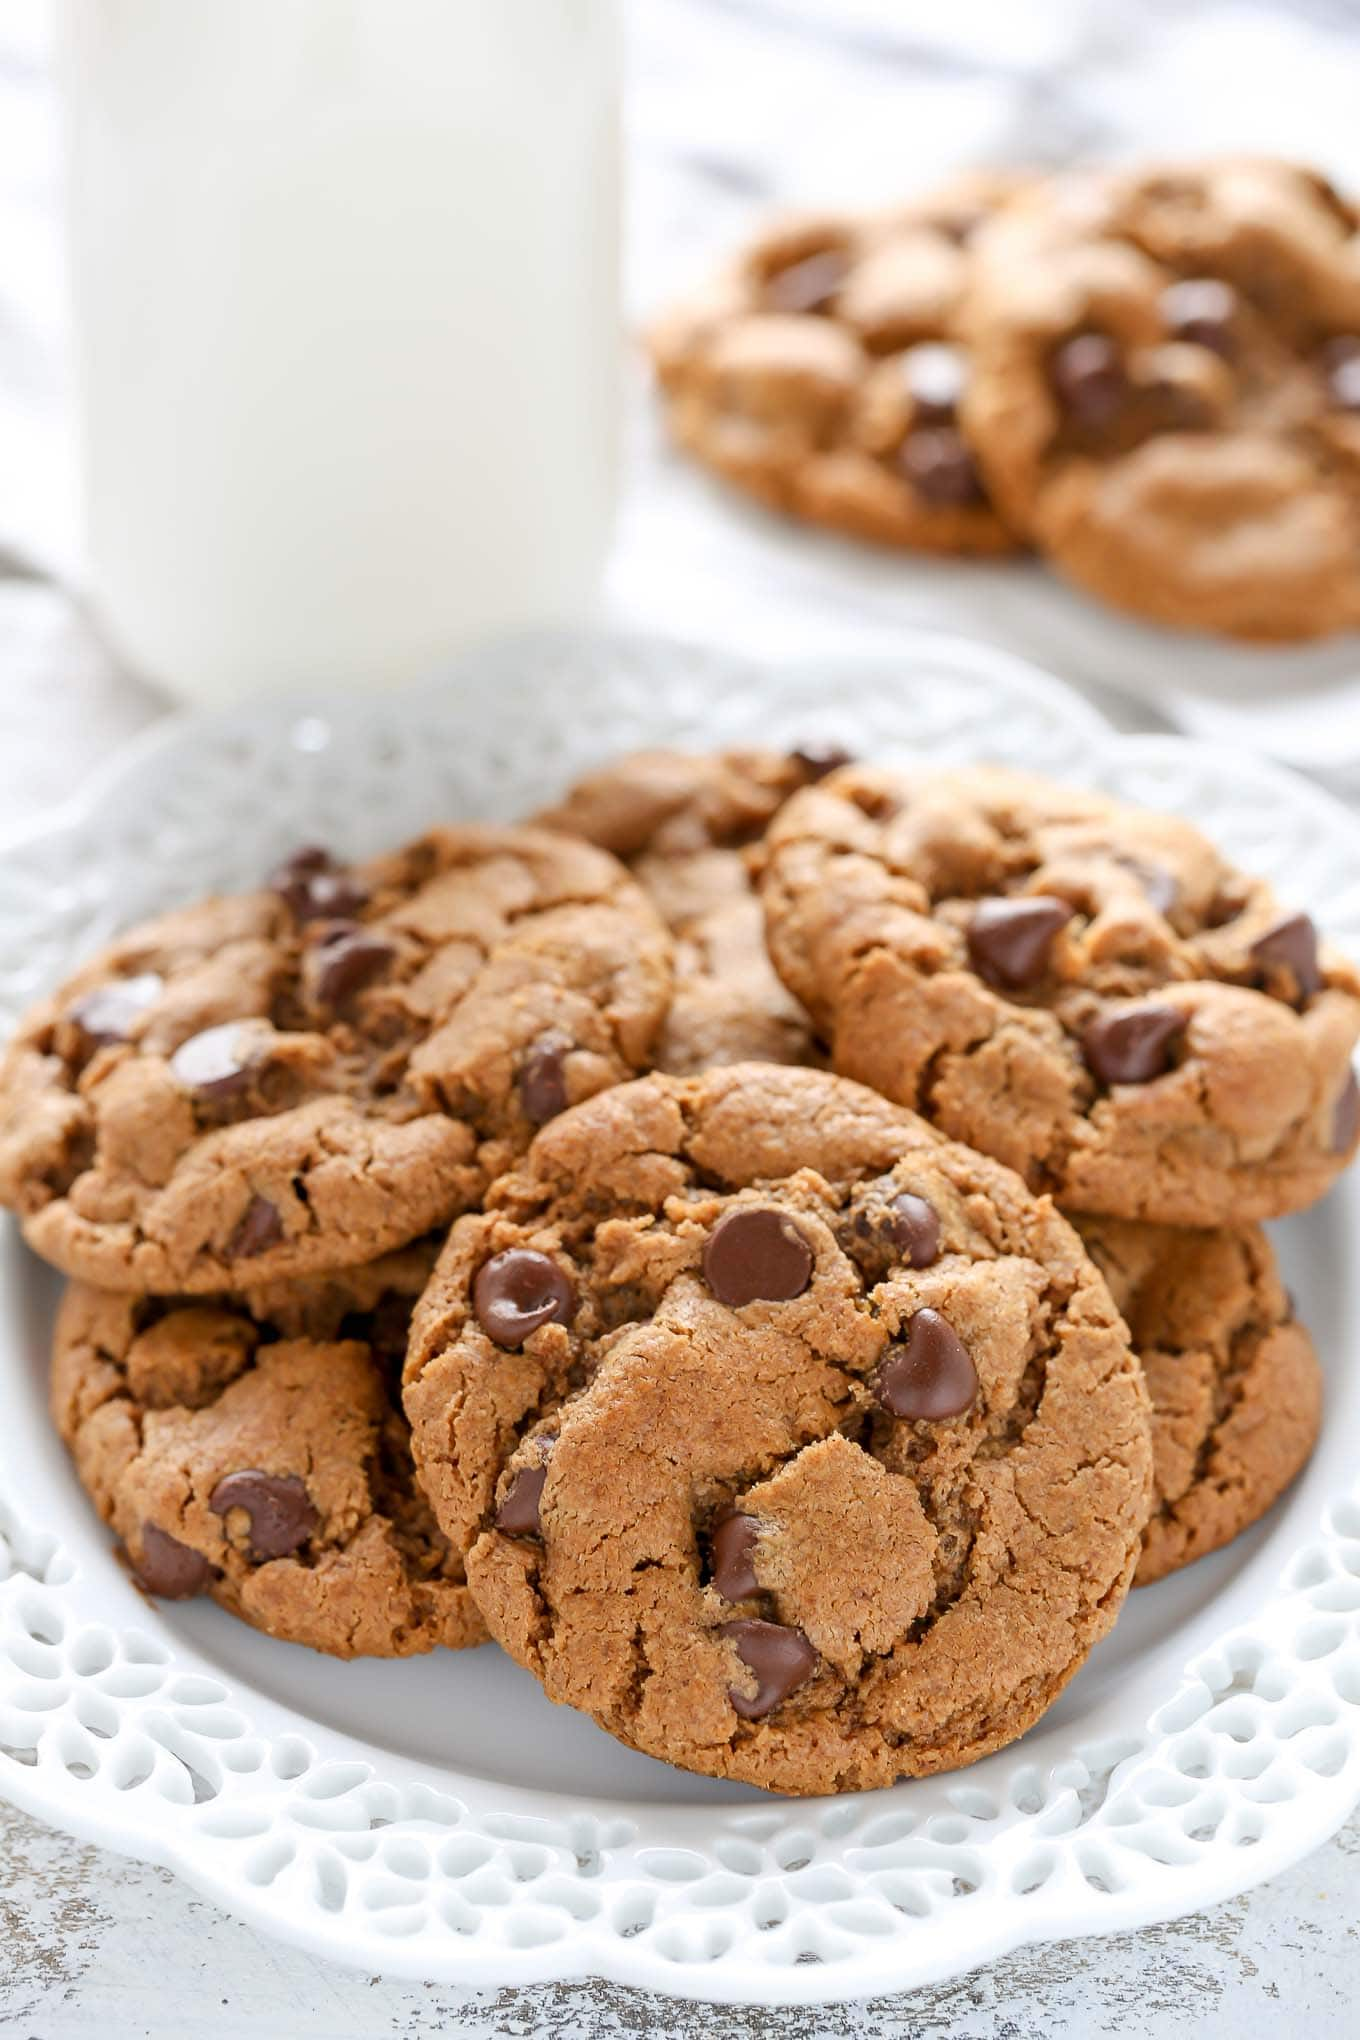 These easy Flourless Almond Butter Chocolate Chip Cookies have no butter or flour! These cookies are also sweetened with coconut sugar and are perfect for a healthier dessert.